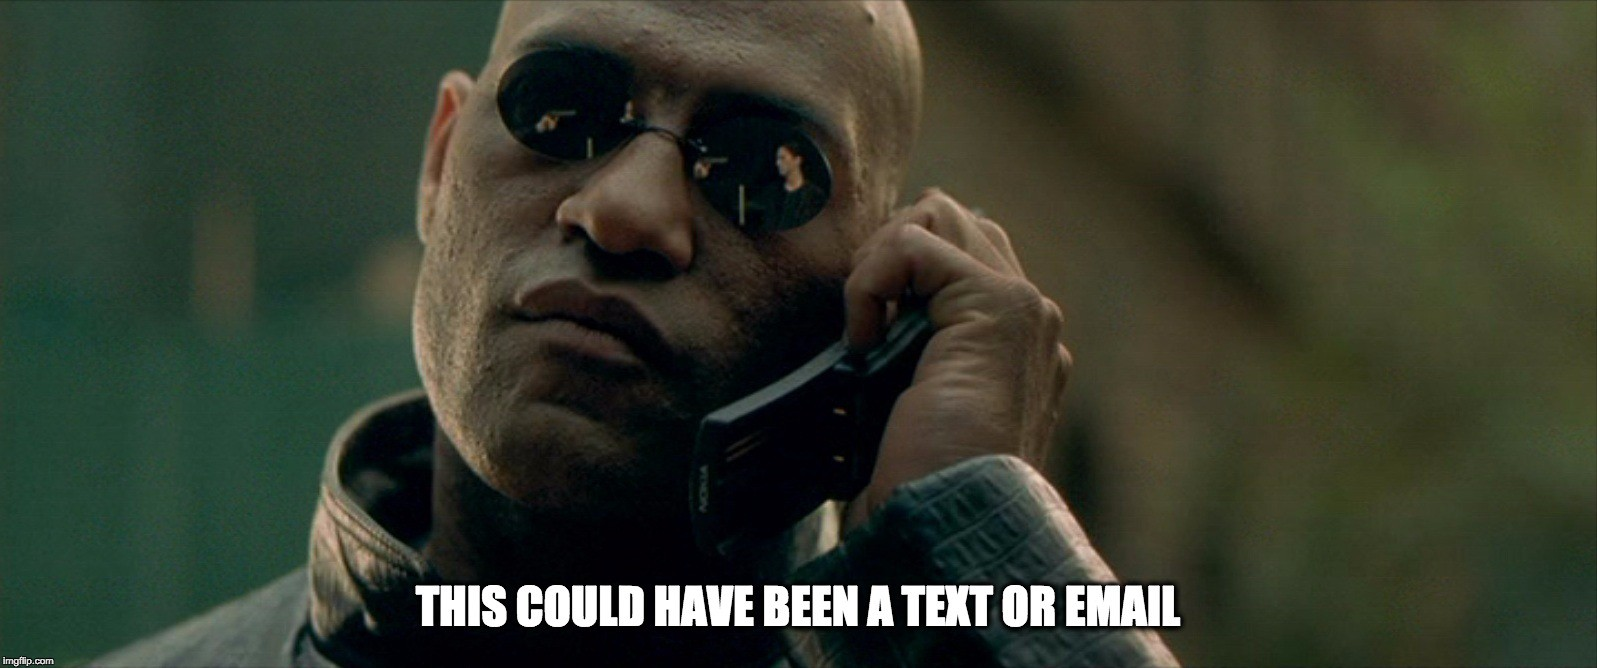 Morpheus from the Matrix movie saying to a mobile phone: this could have been a text or email